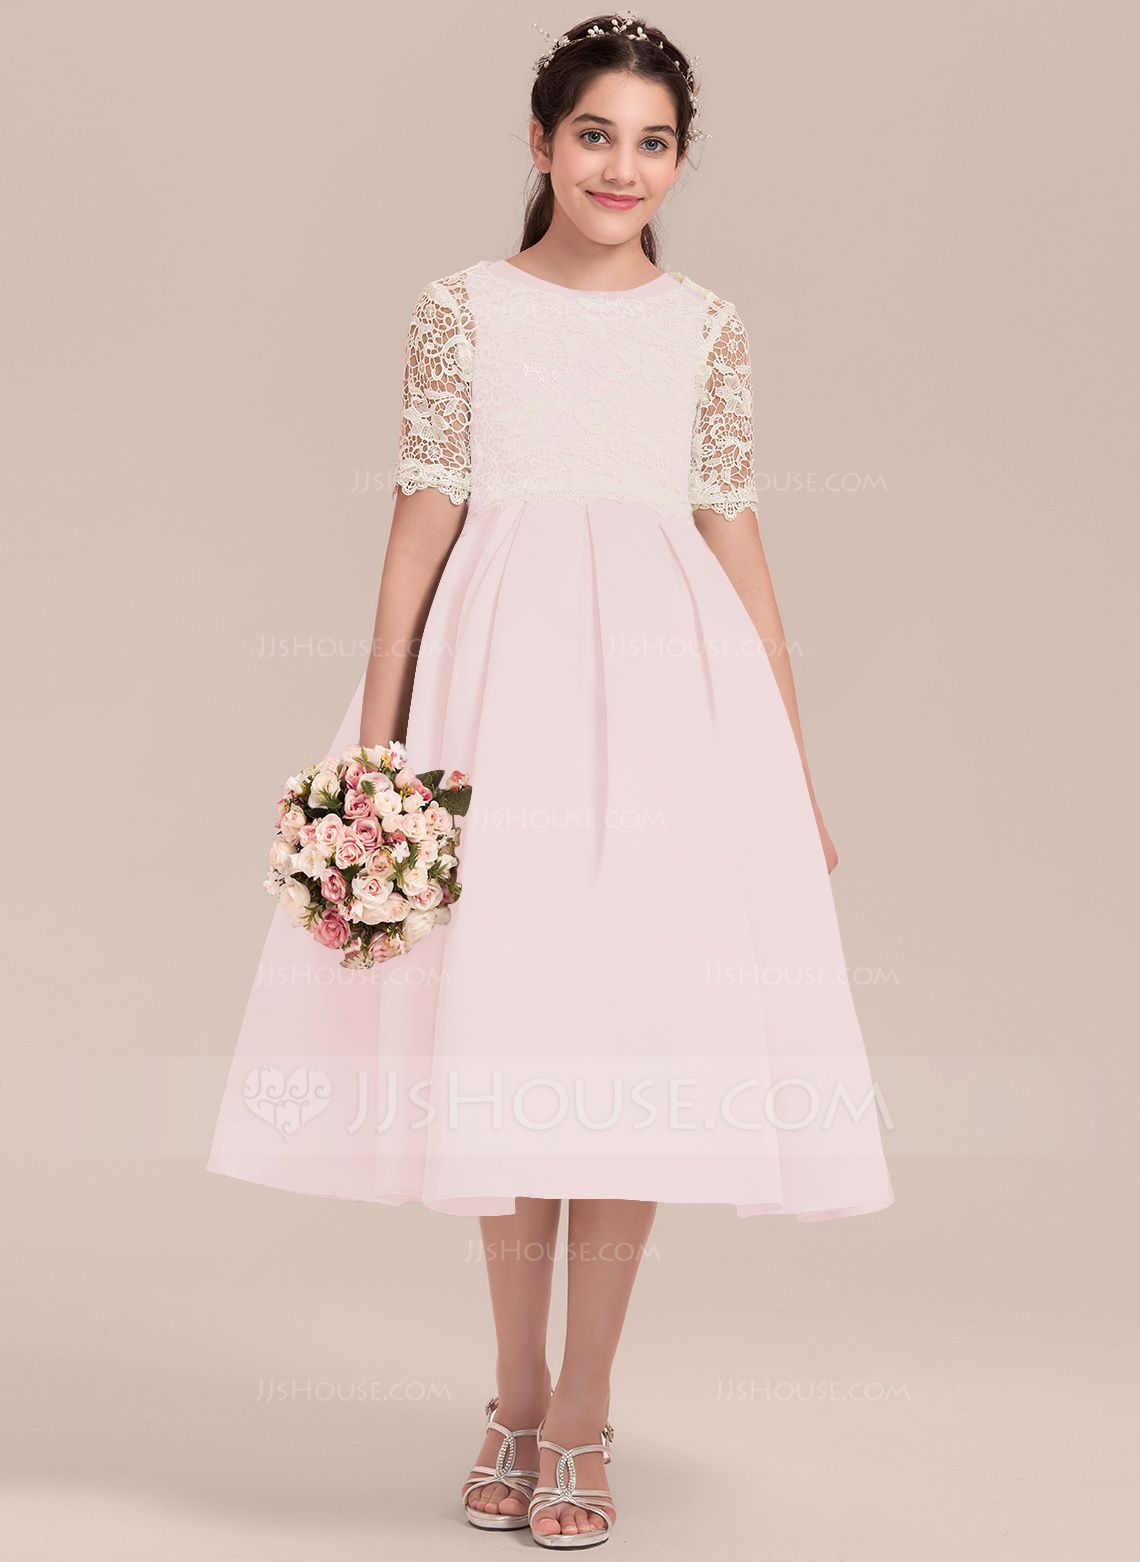 f59f60e7dc3 Wedding Junior Bridesmaid Dresses